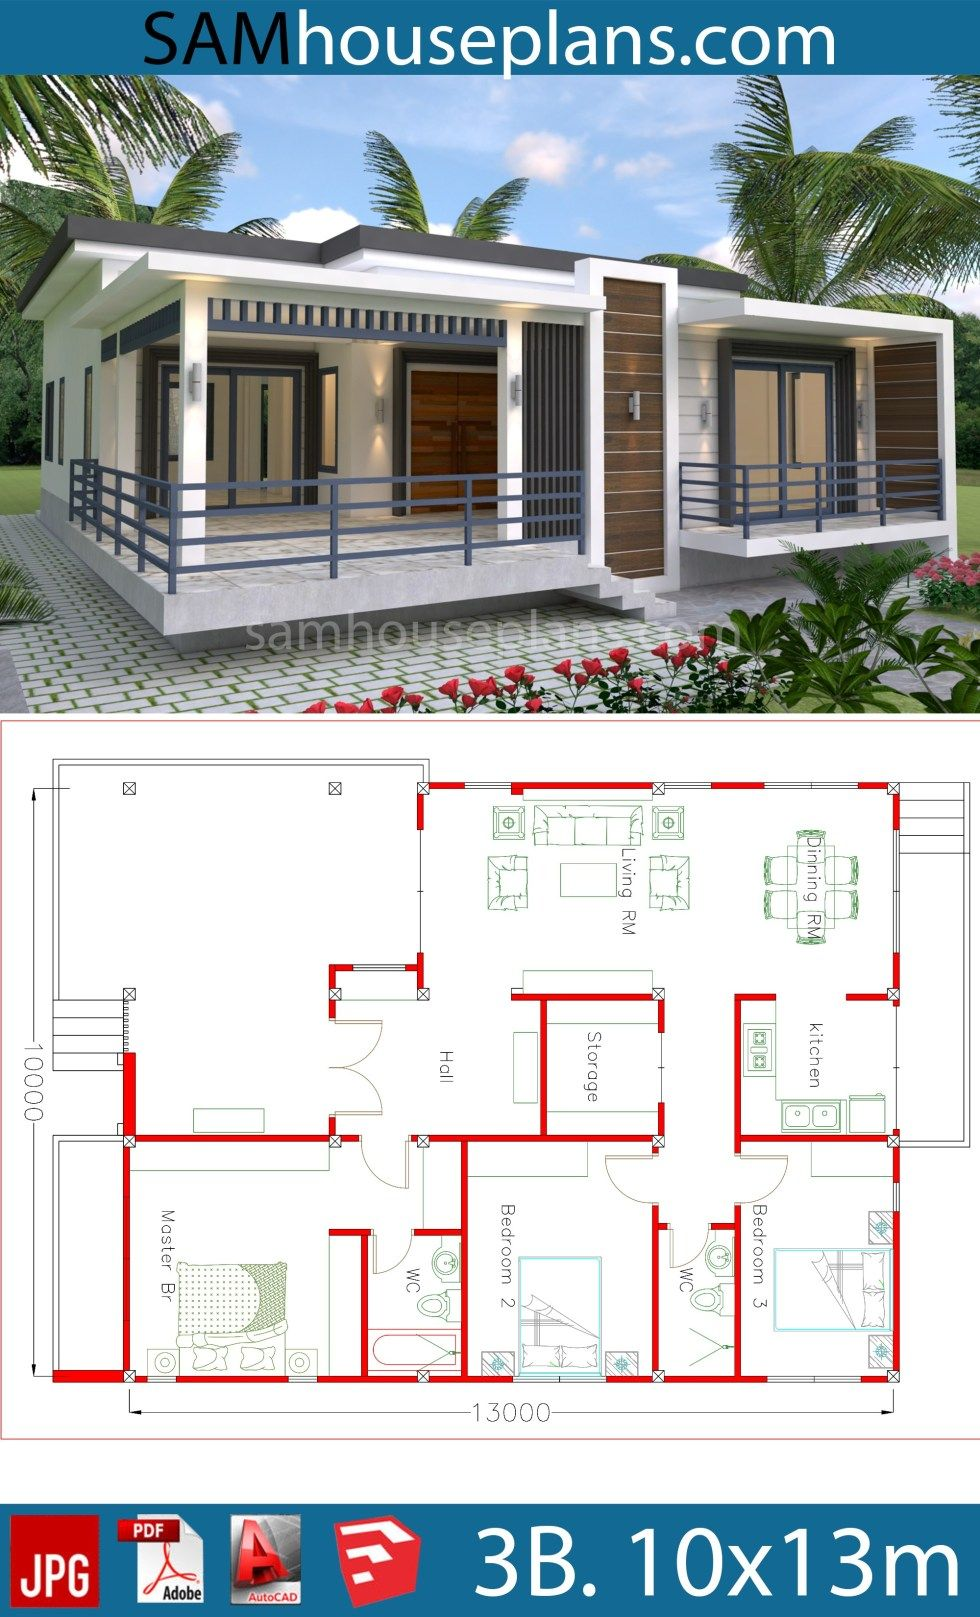 Photo of House Plans 10x13m with 3 Bedrooms – Sam House Plans